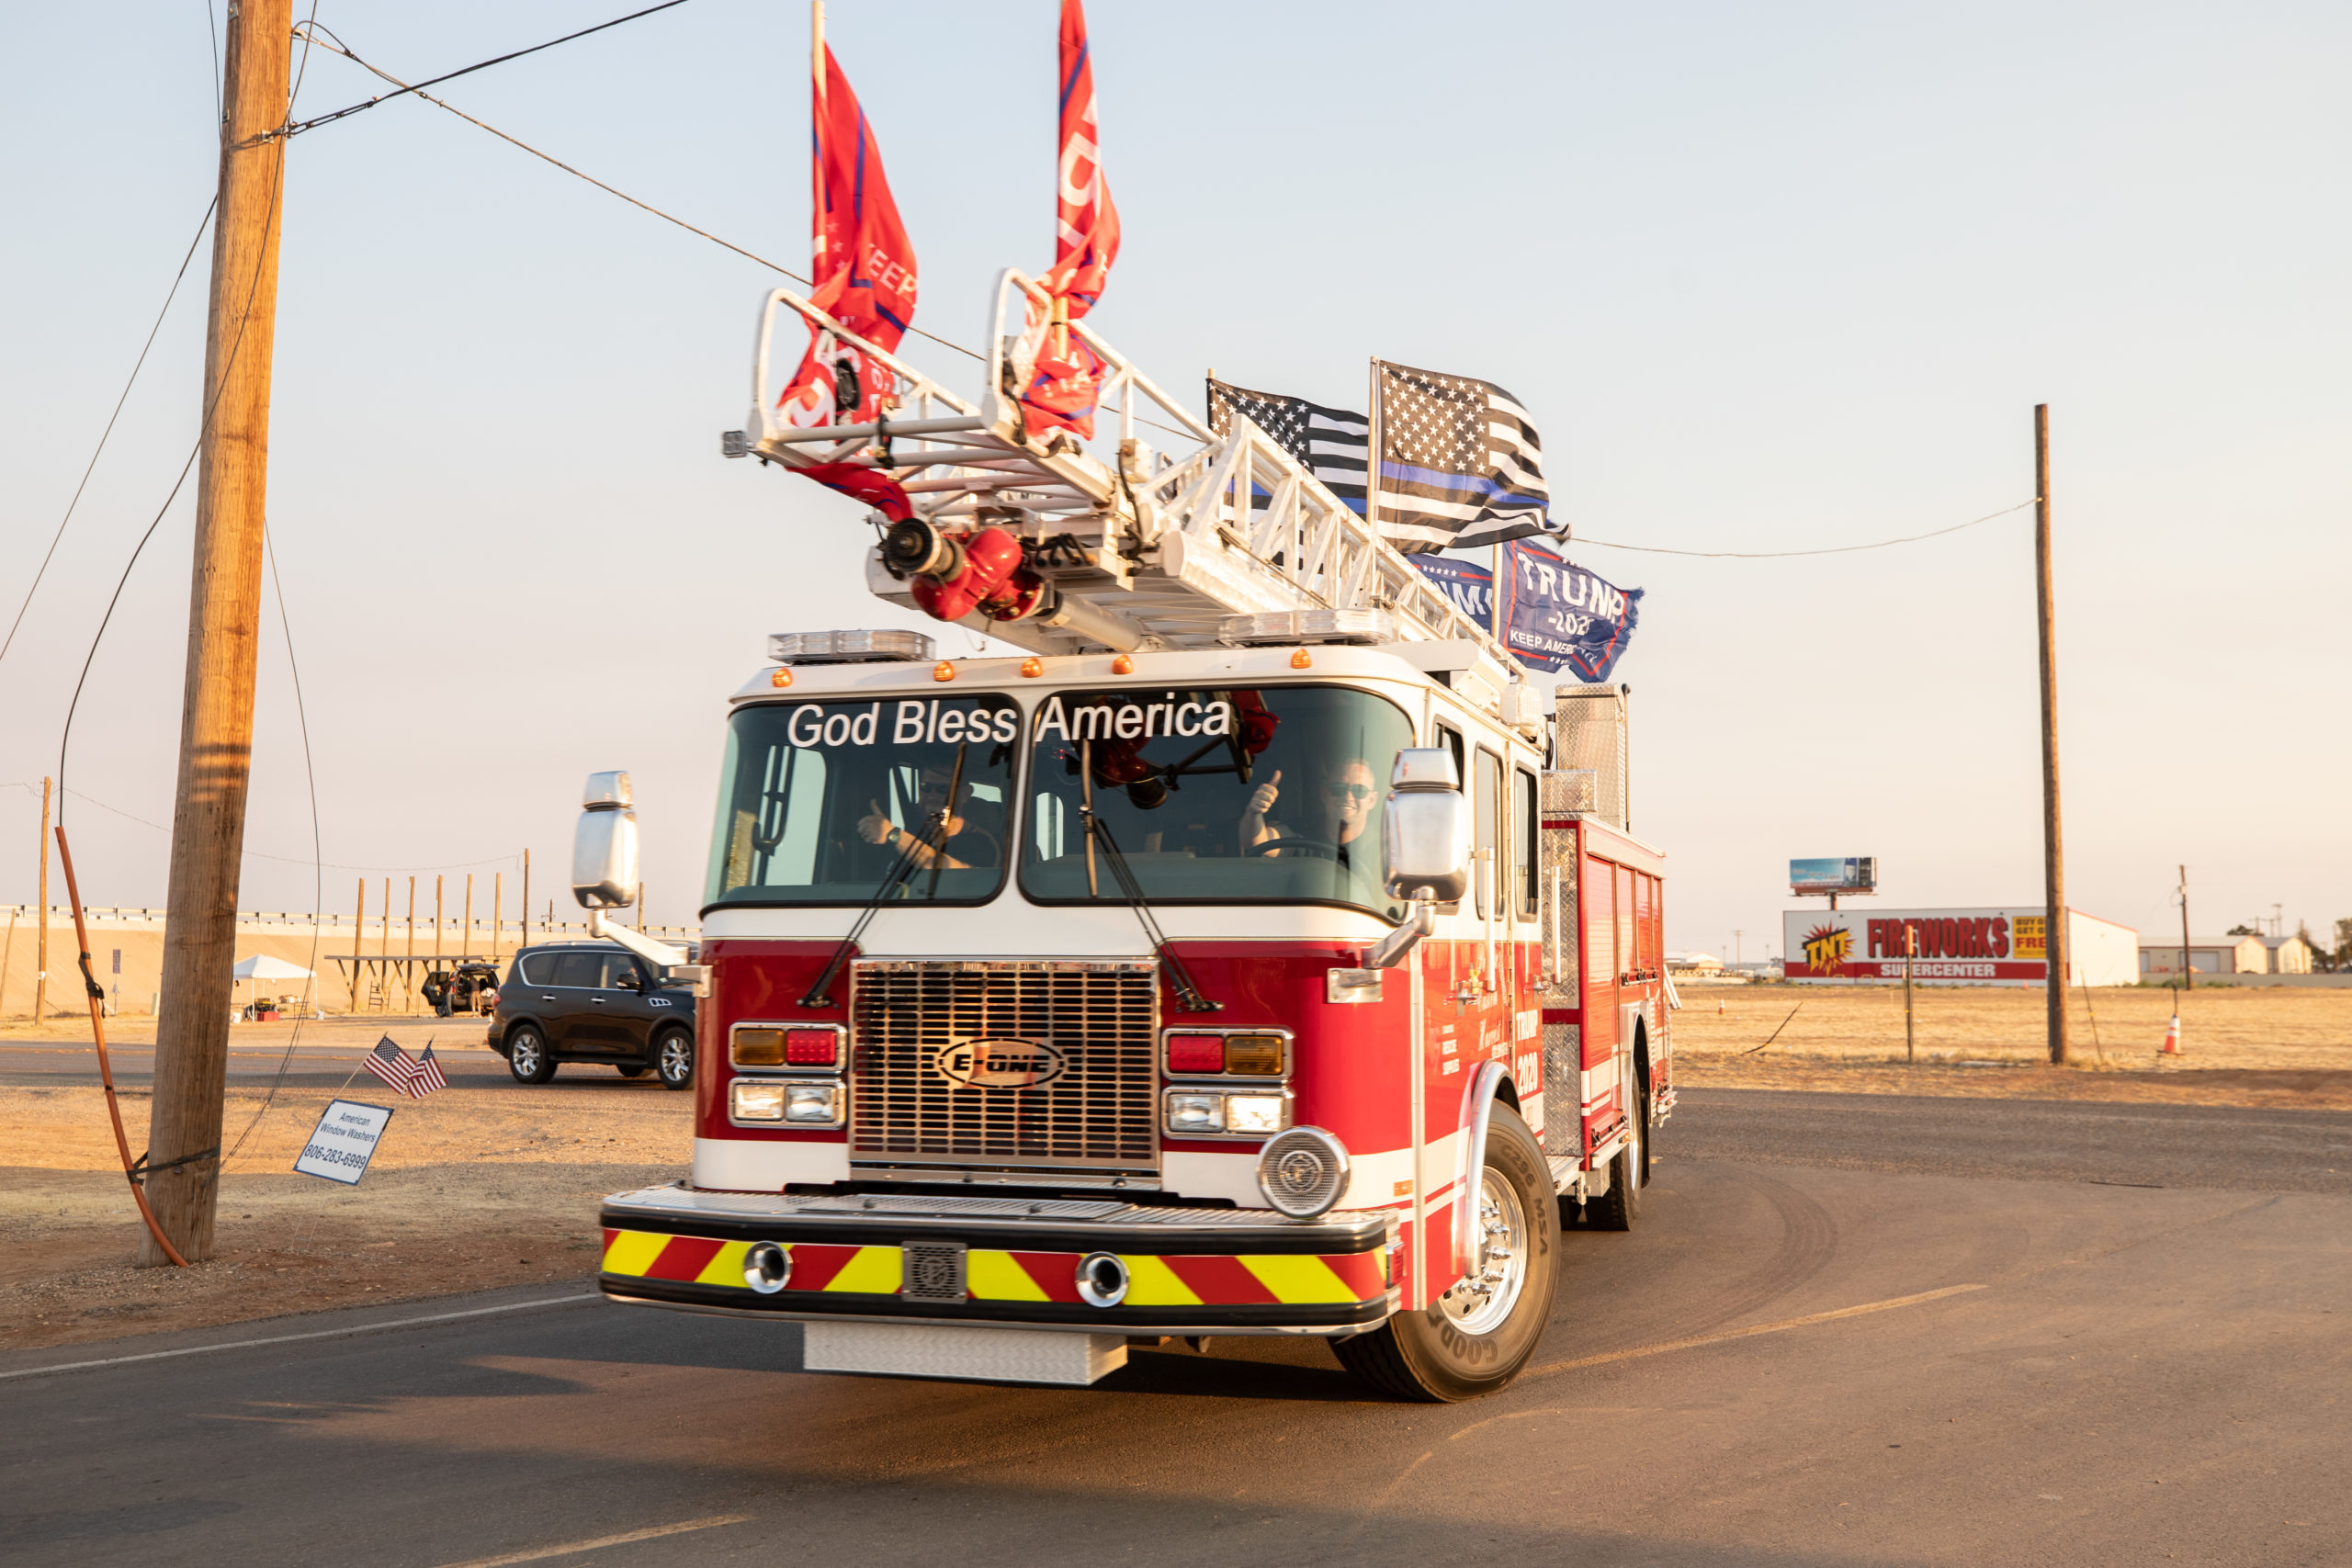 """A fire truck returns to Cook's Garage from a """"Trump Train"""" car parade in Lubbock, Texas, on Sunday, Oct. 18, 2020. (Kaylee Greenlee - DCNF)"""